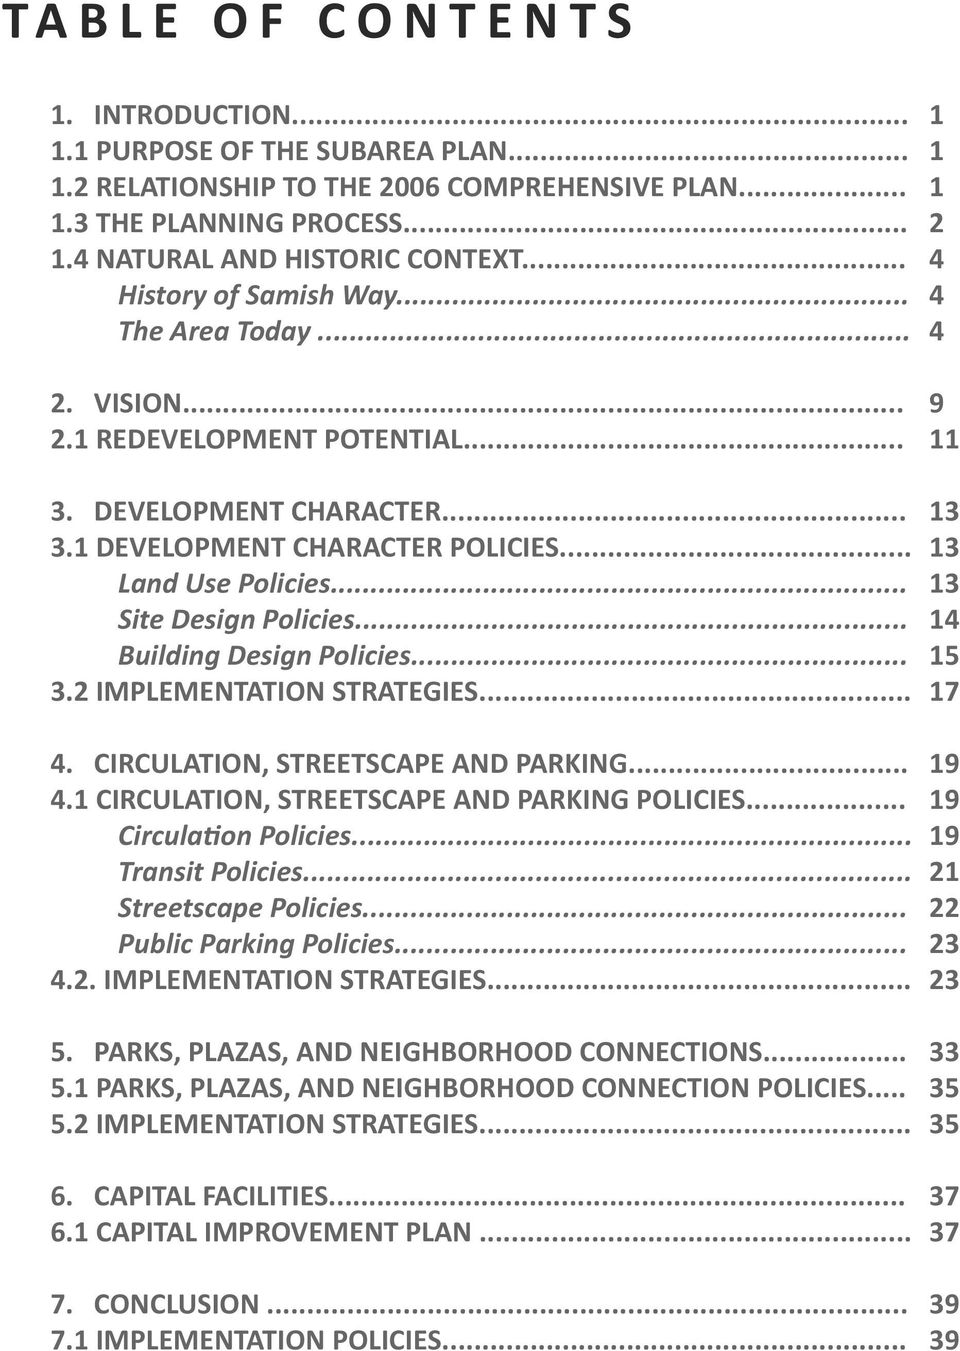 .. 13 Land Use Policies... 13 Site Design Policies... 14 Building Design Policies... 15 3.2 IMPLEMENTATION STRATEGIES... 17 4. CIRCULATION, STREETSCAPE AND PARKING... 19 4.